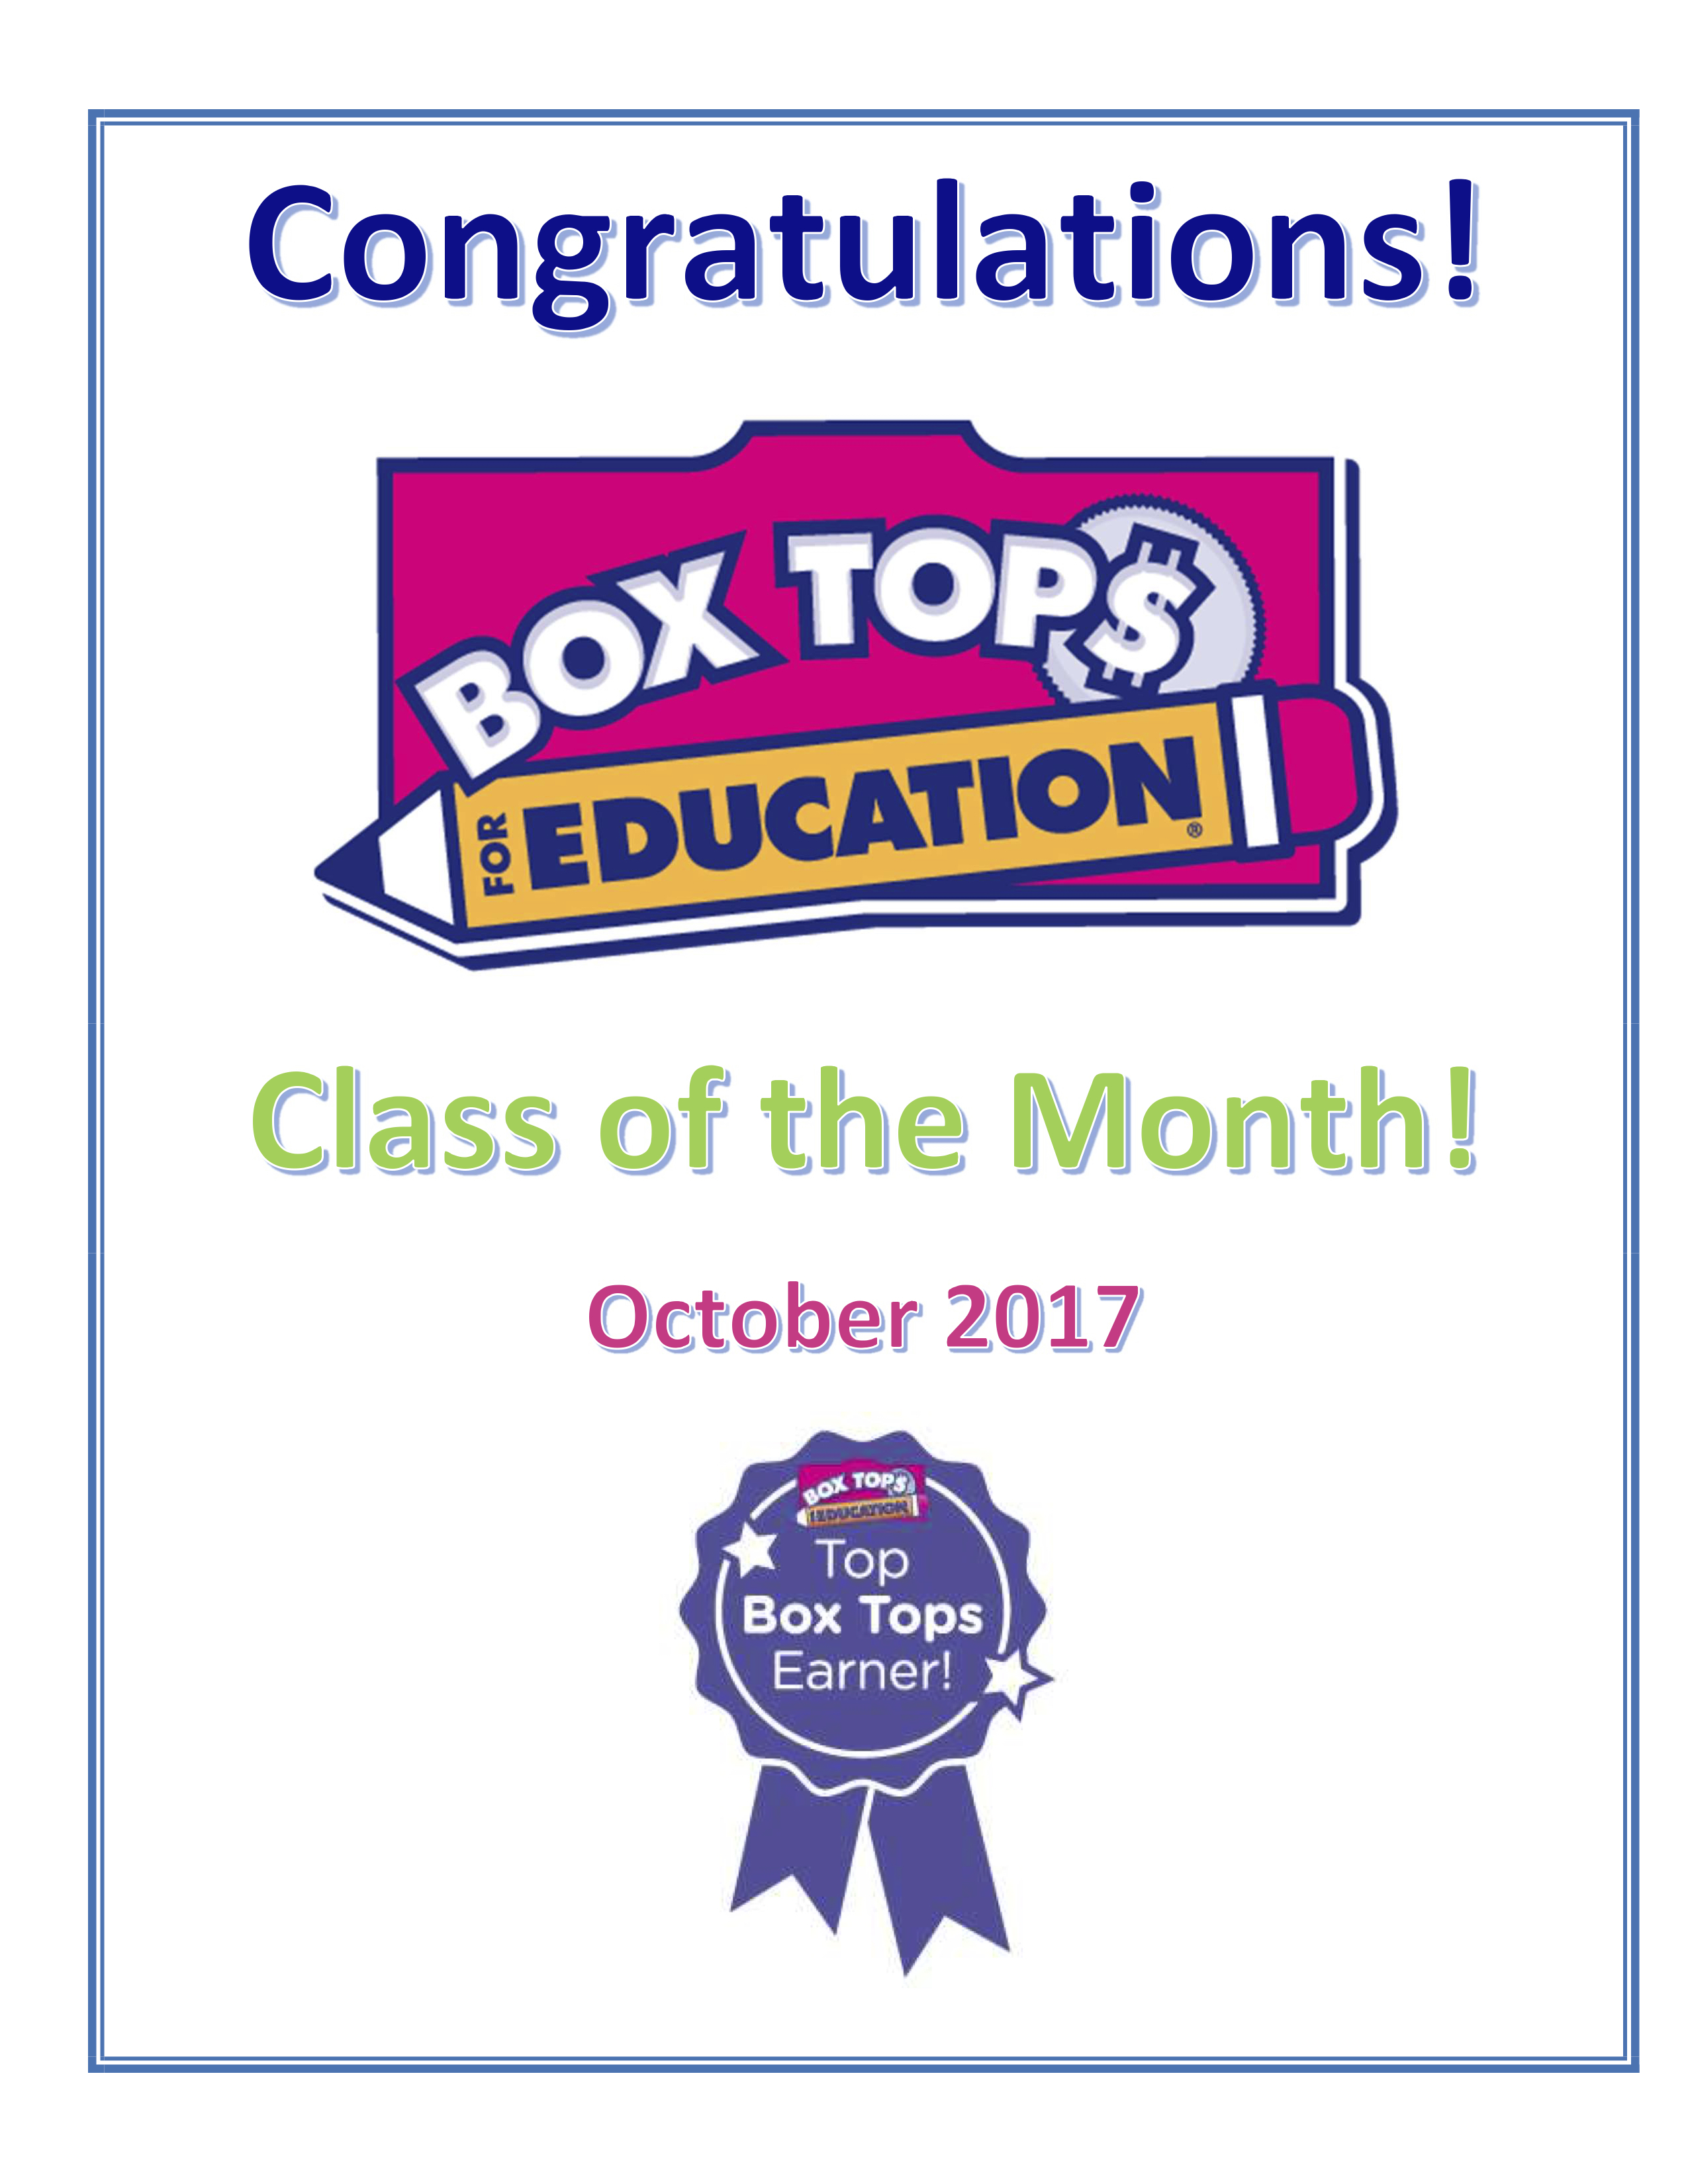 Box Top Class of the Month